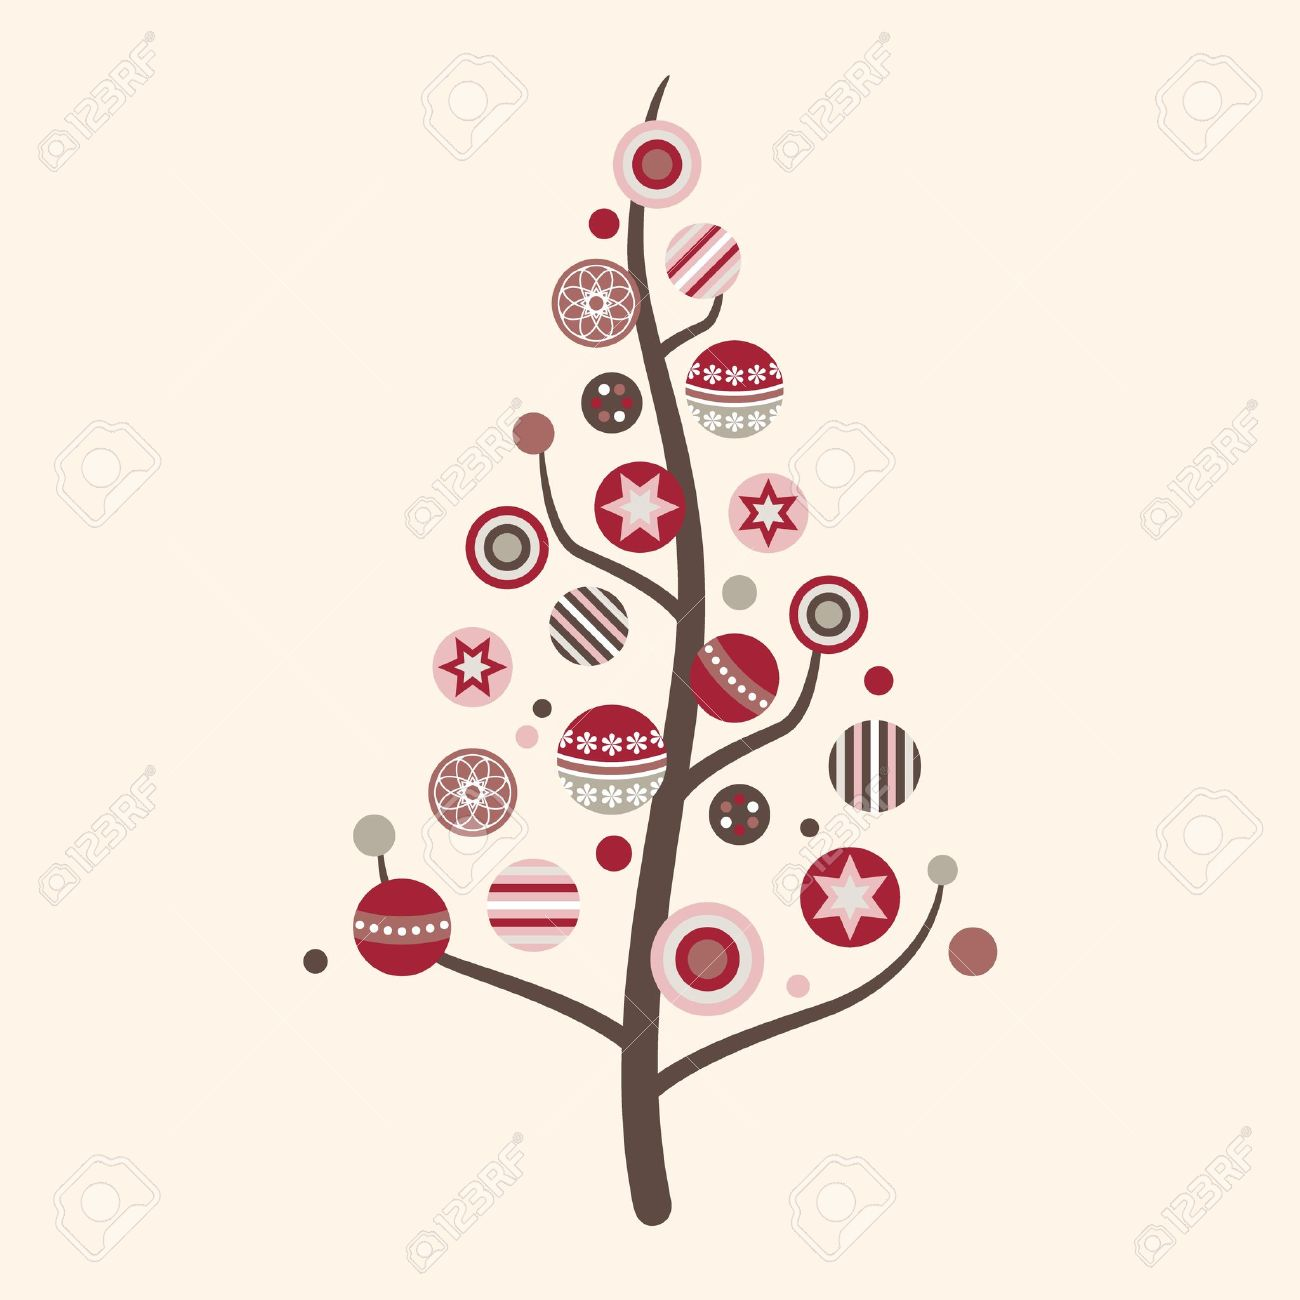 Colorful Christmas Tree Vector.Abstract Christmas Tree Vector In Modern Colors